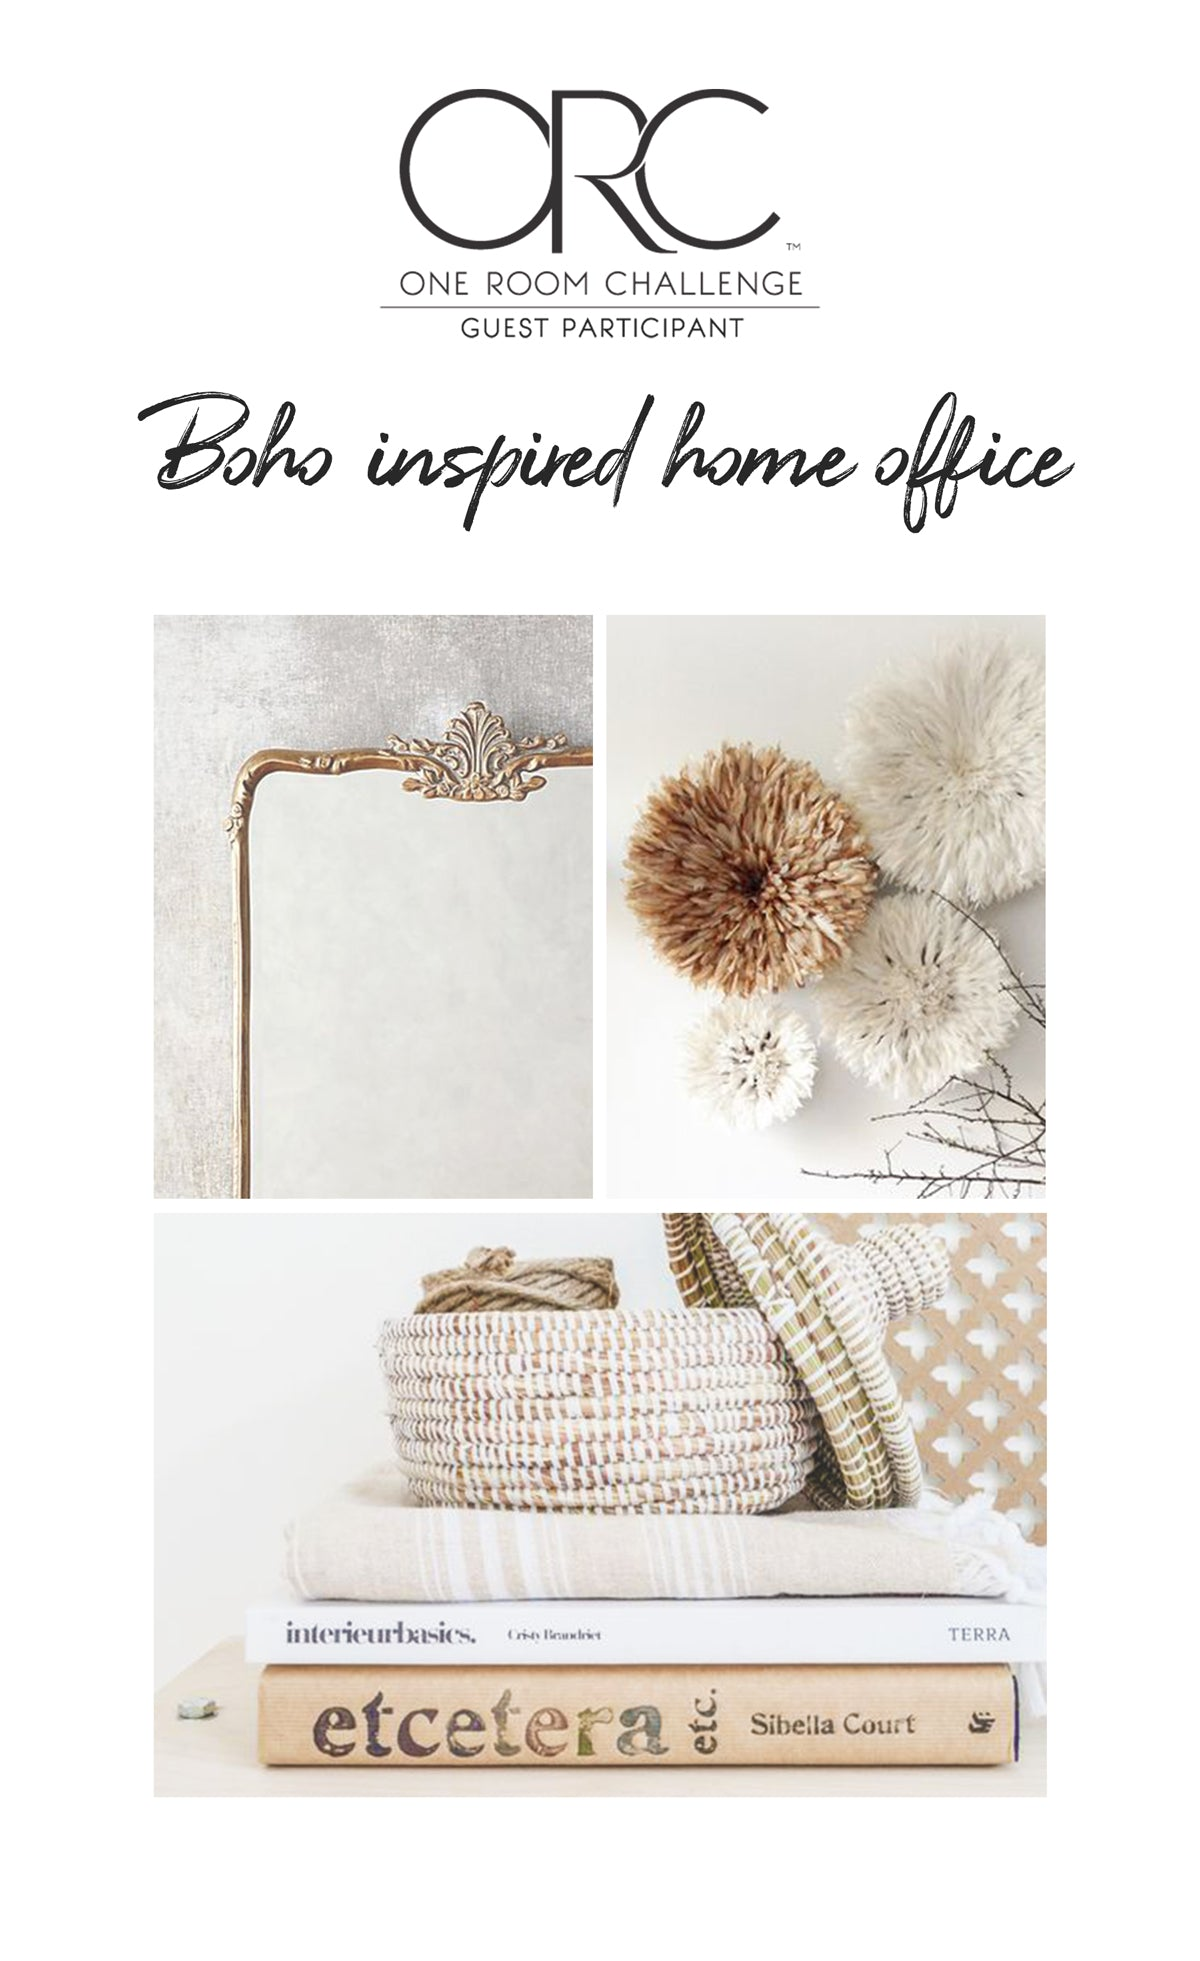 One Room Challenge, home office design, boho chic interior inspiration